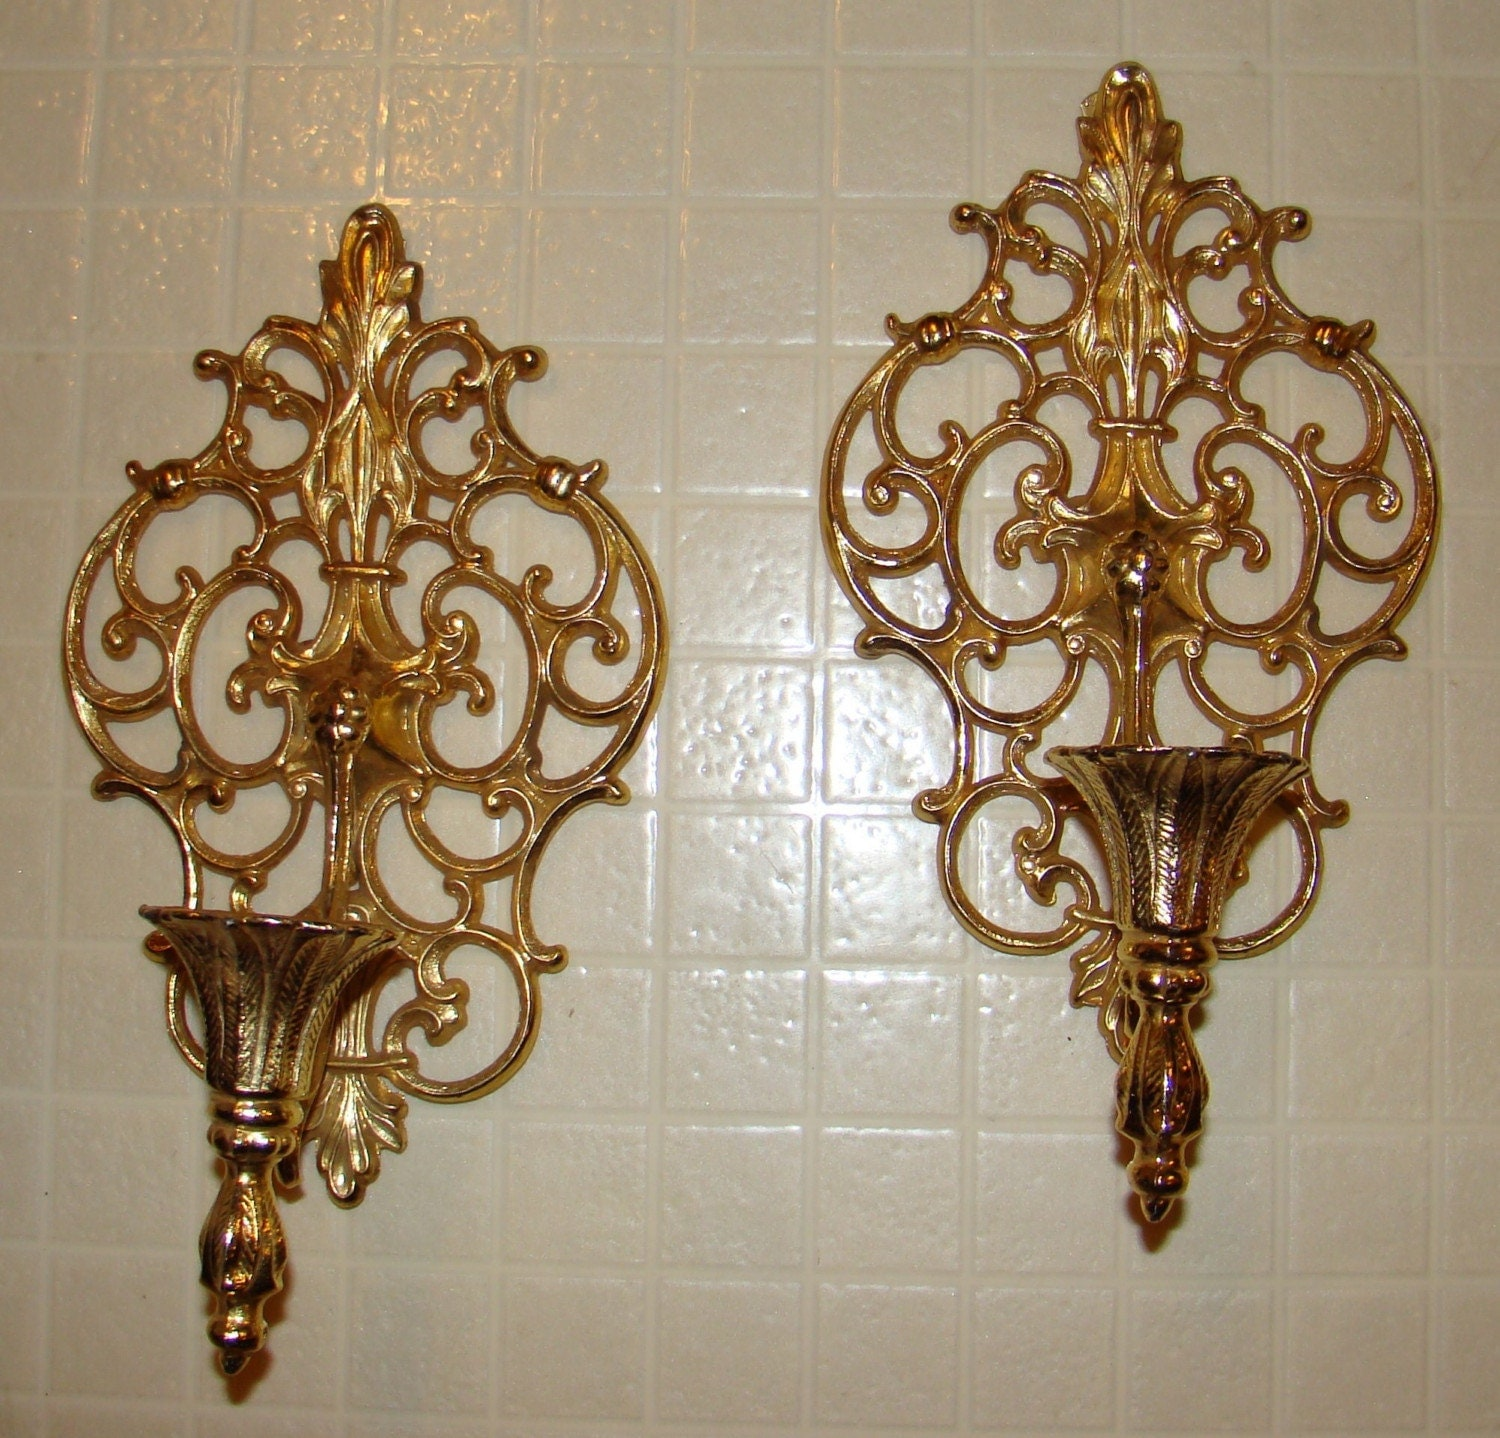 Metal Wall Sconces For Candles : Vintage Pair Ornate Gold Tone Metal Wall Sconces/Candle